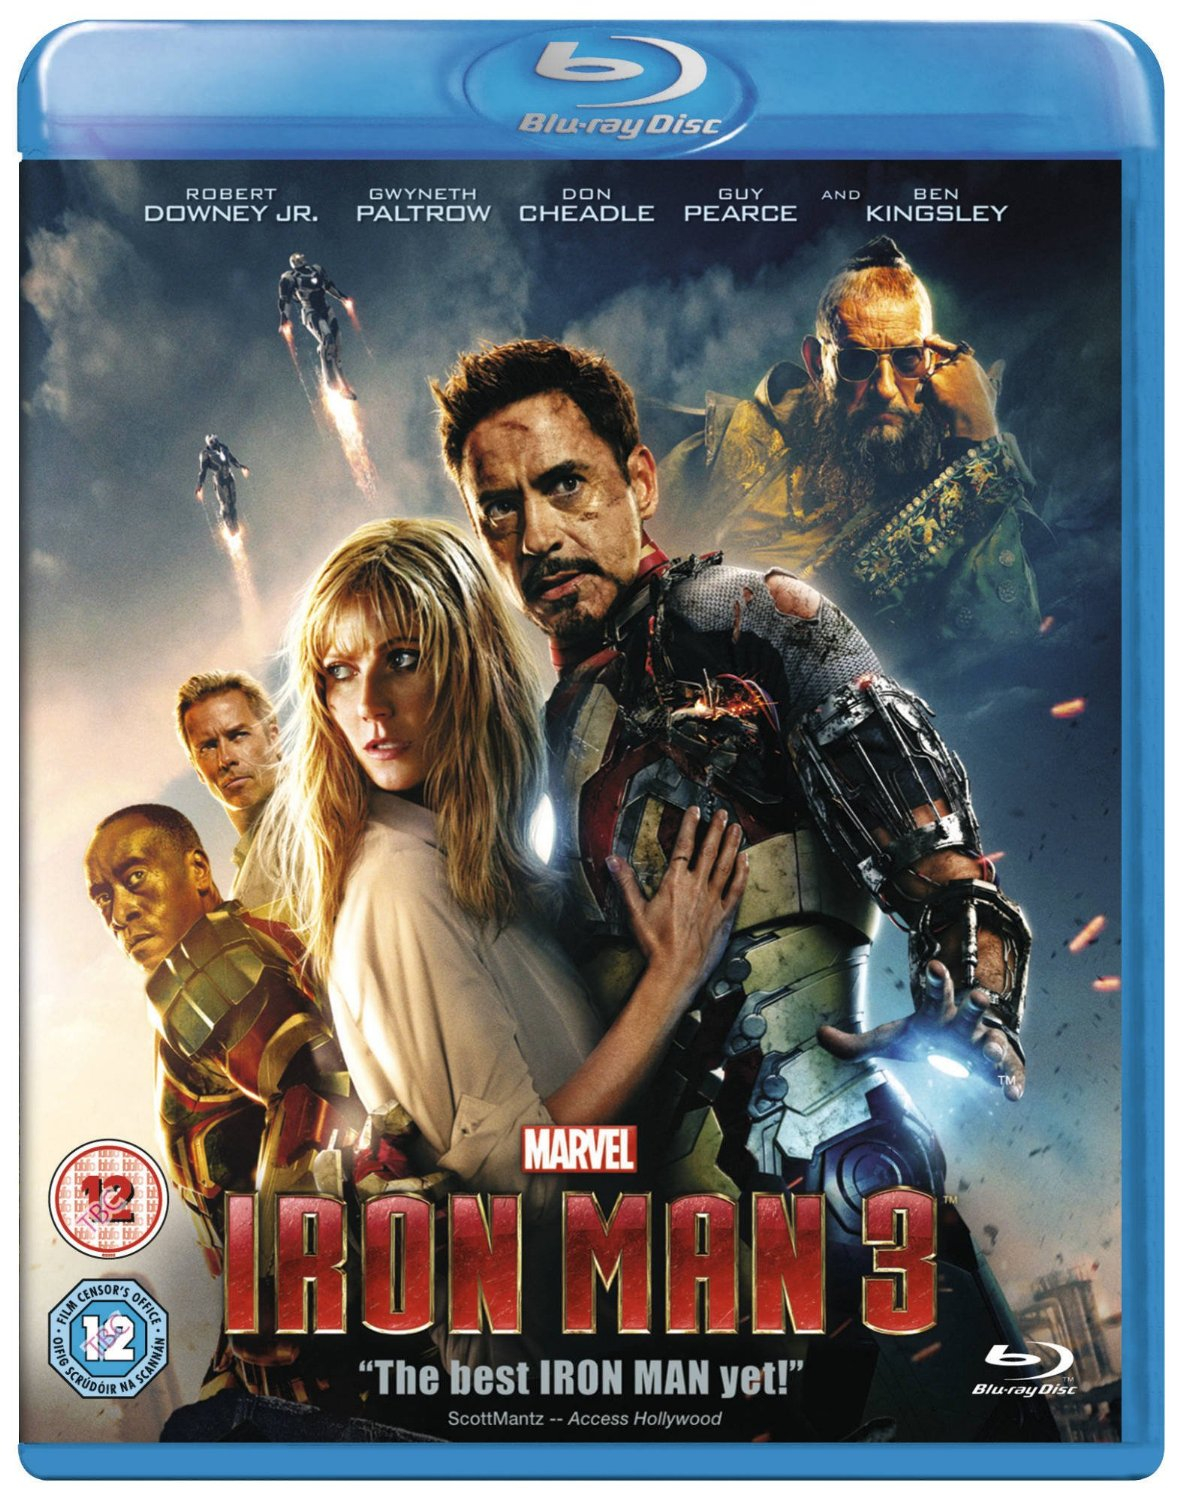 Iron man 3 blu ray dvd special features revealed - Halloween hipercor ...